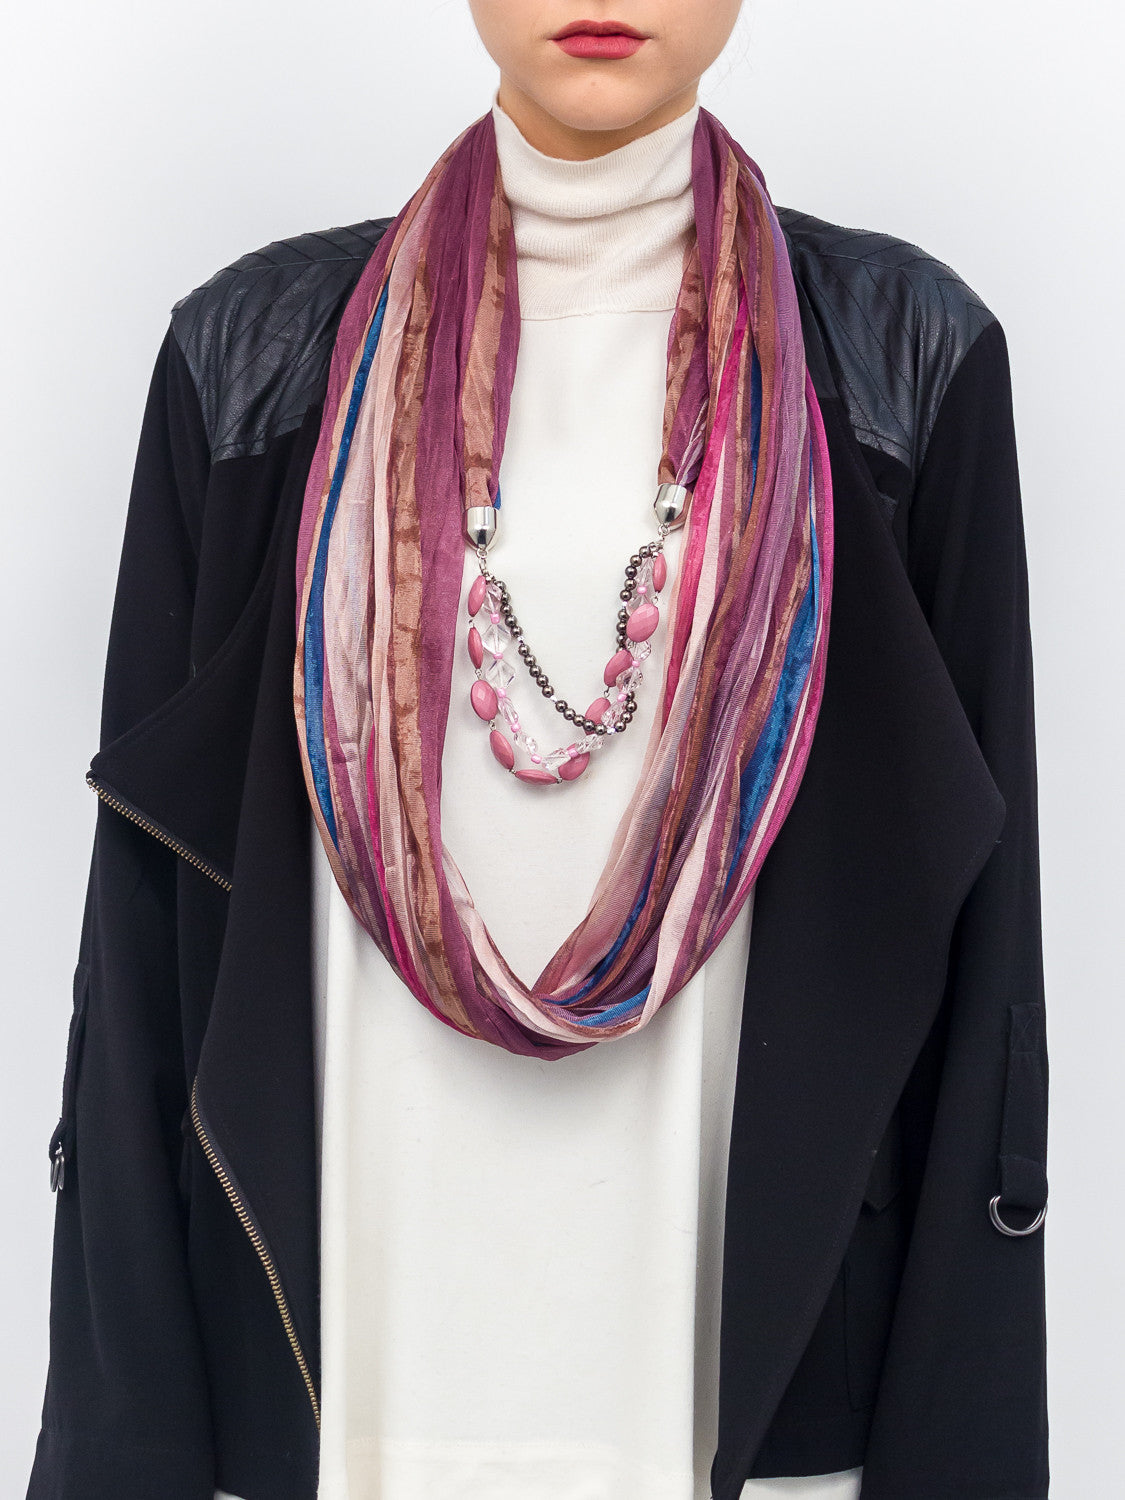 Jewerly Watercolor Stripe Scarf - Just Jamie